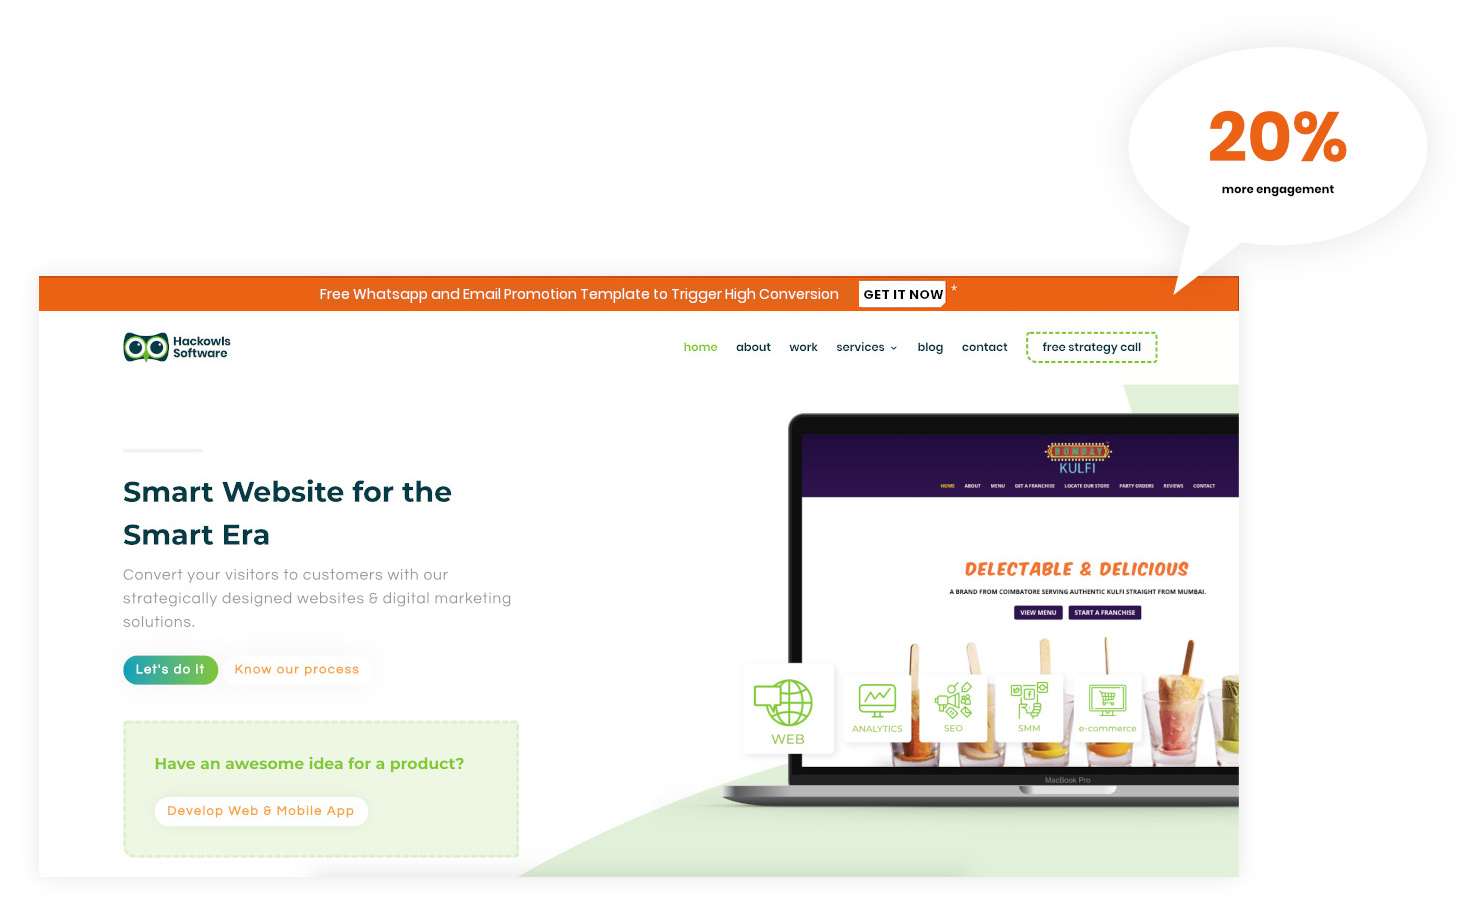 Engage website visitors with floating engagement bar